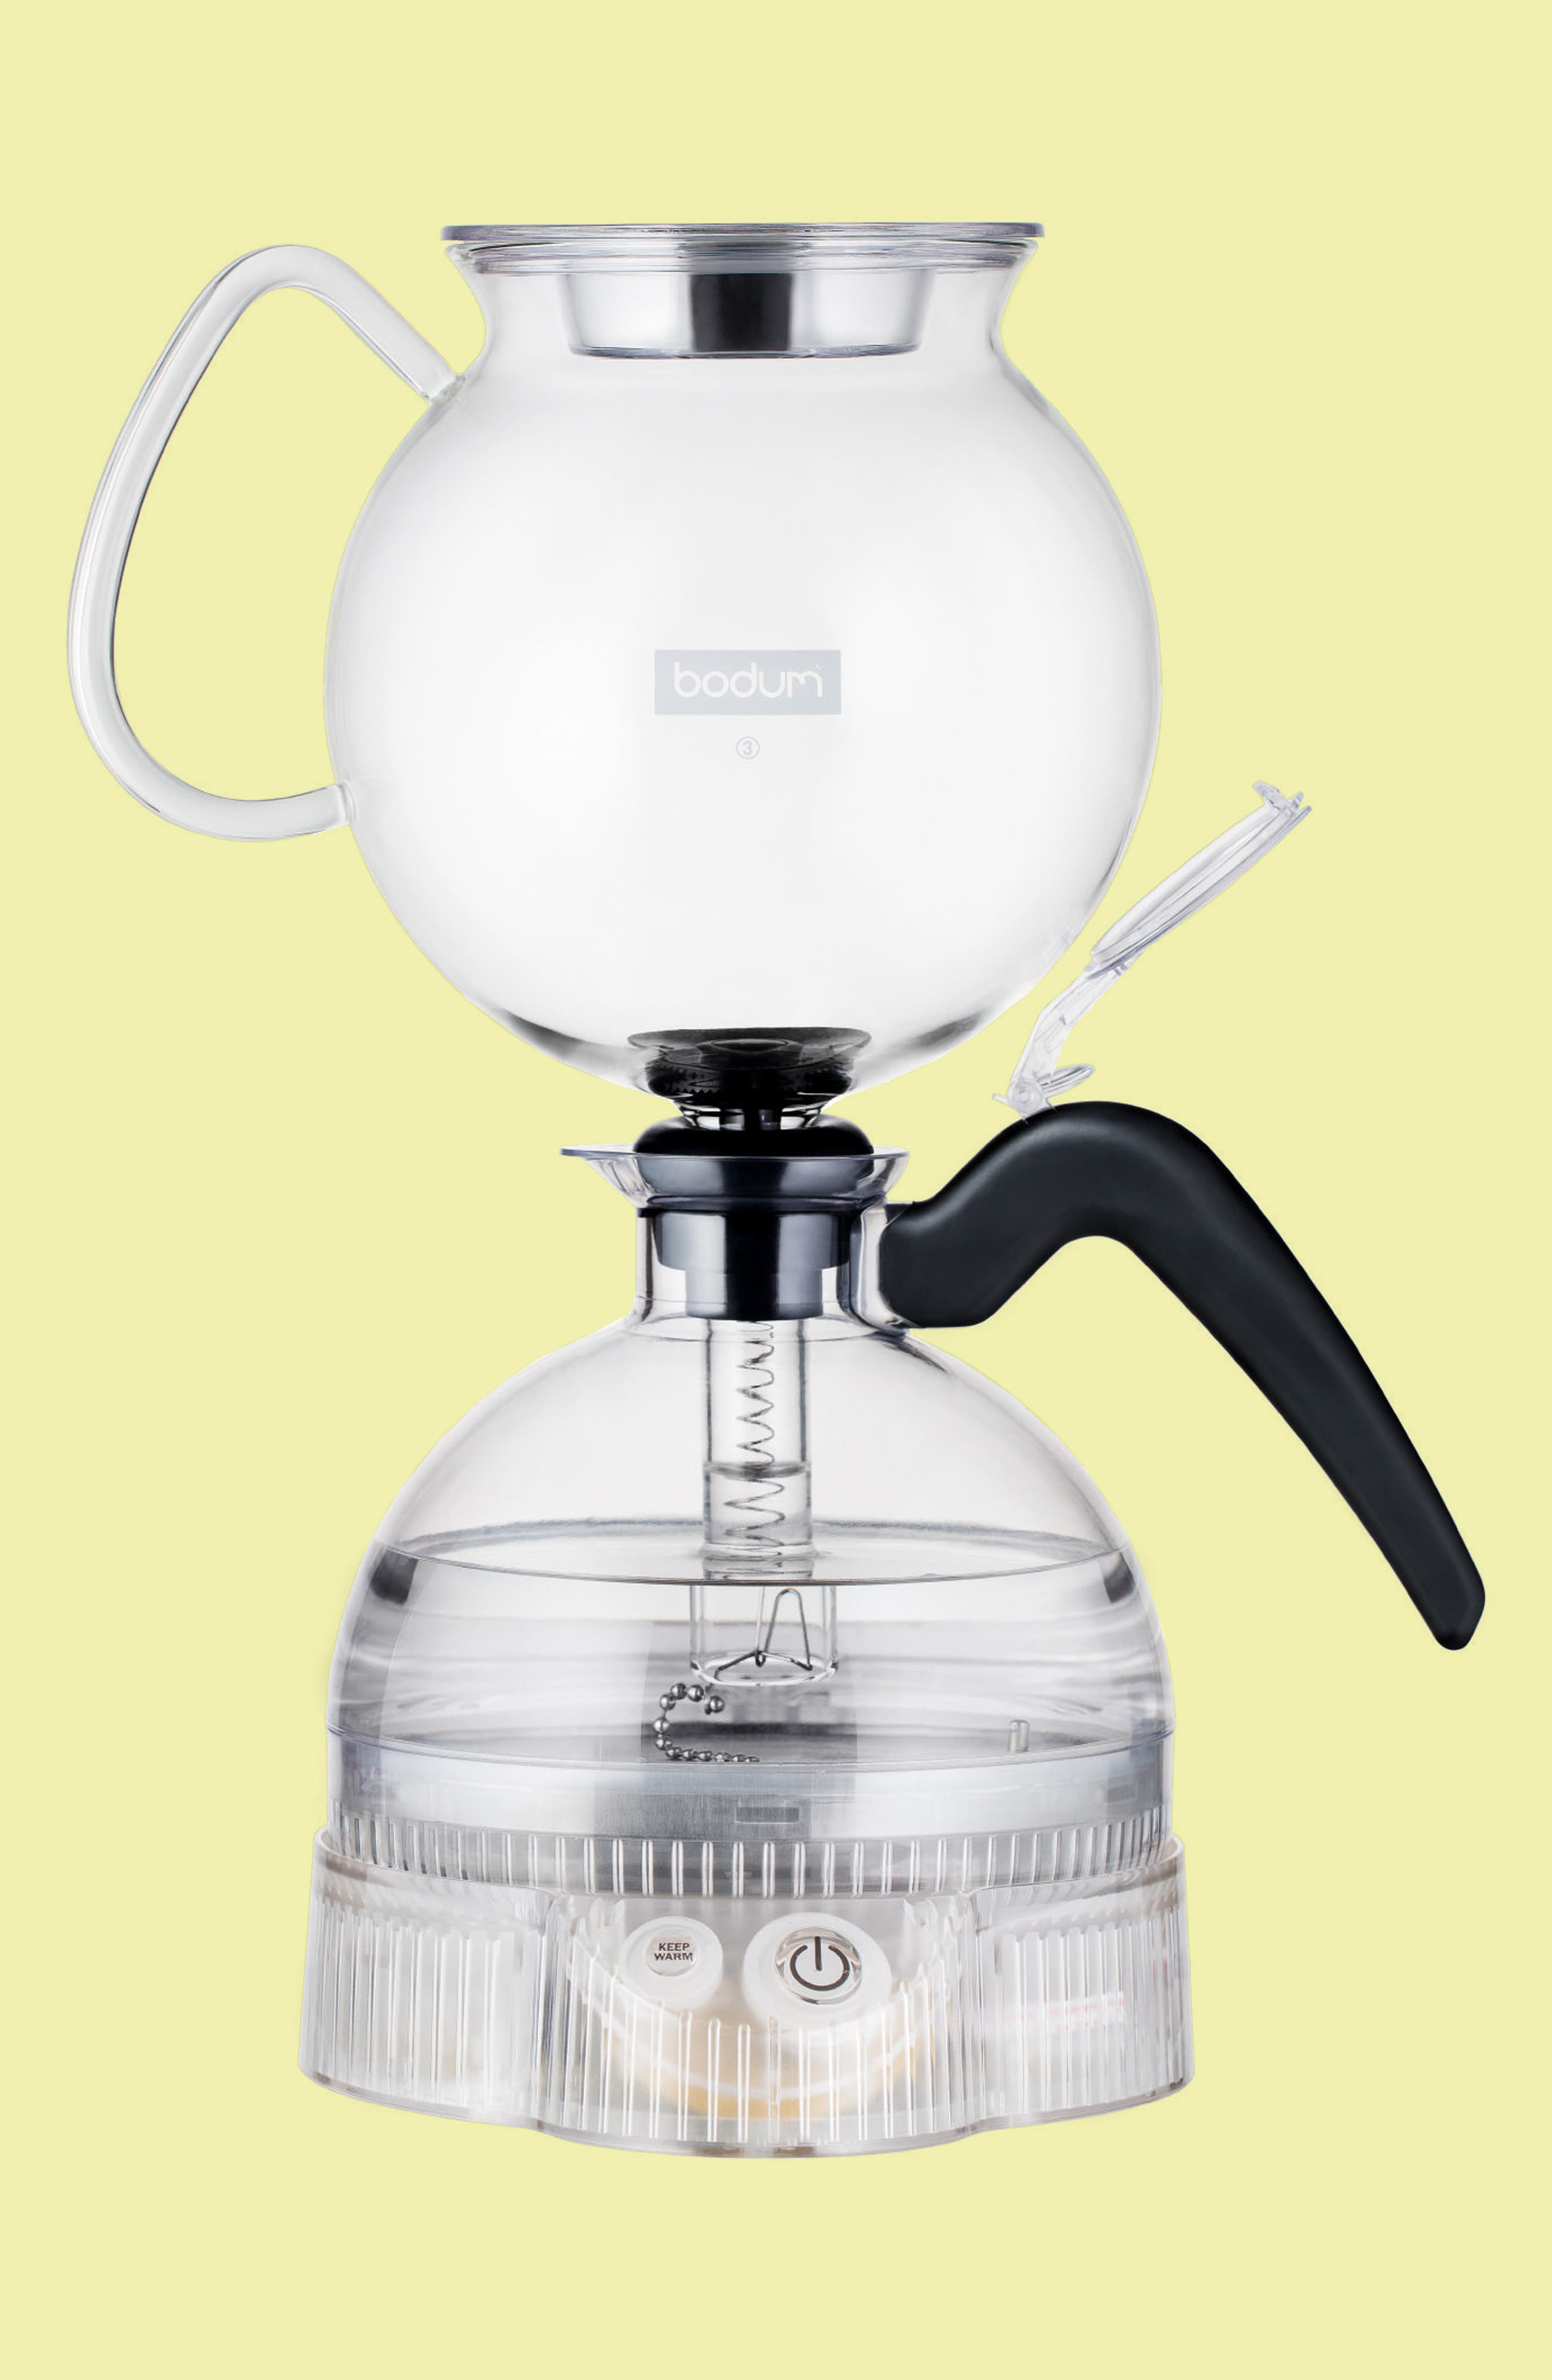 Epebo Vacuum Coffee Maker, Main, color, 960